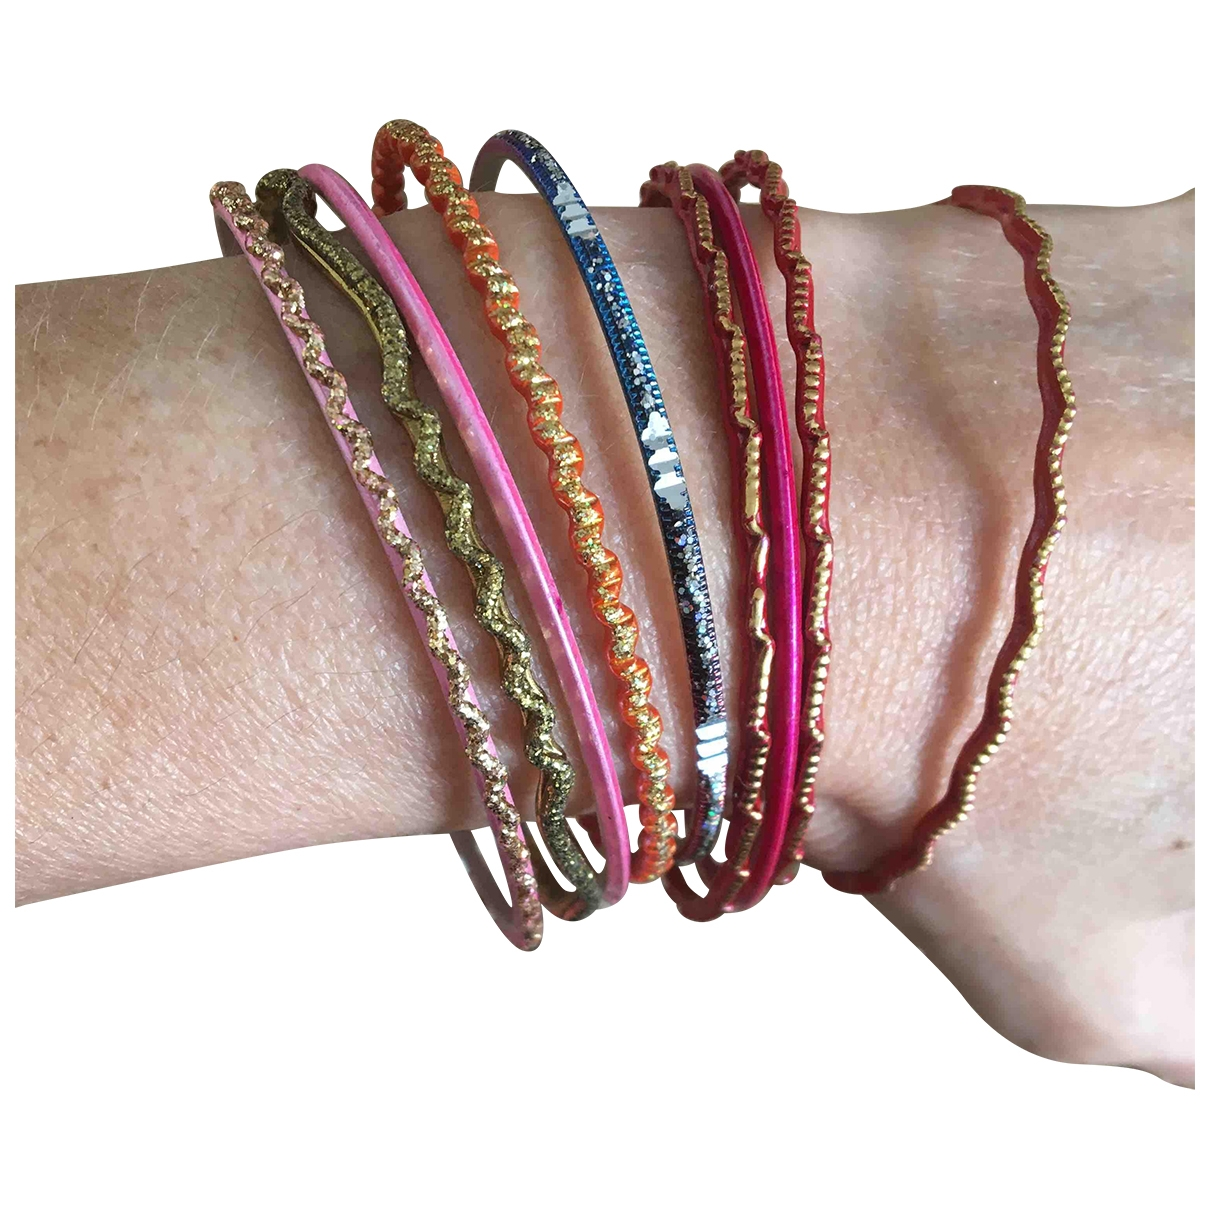 Non Signe / Unsigned Motifs Ethniques Armband in  Bunt Kunststoff